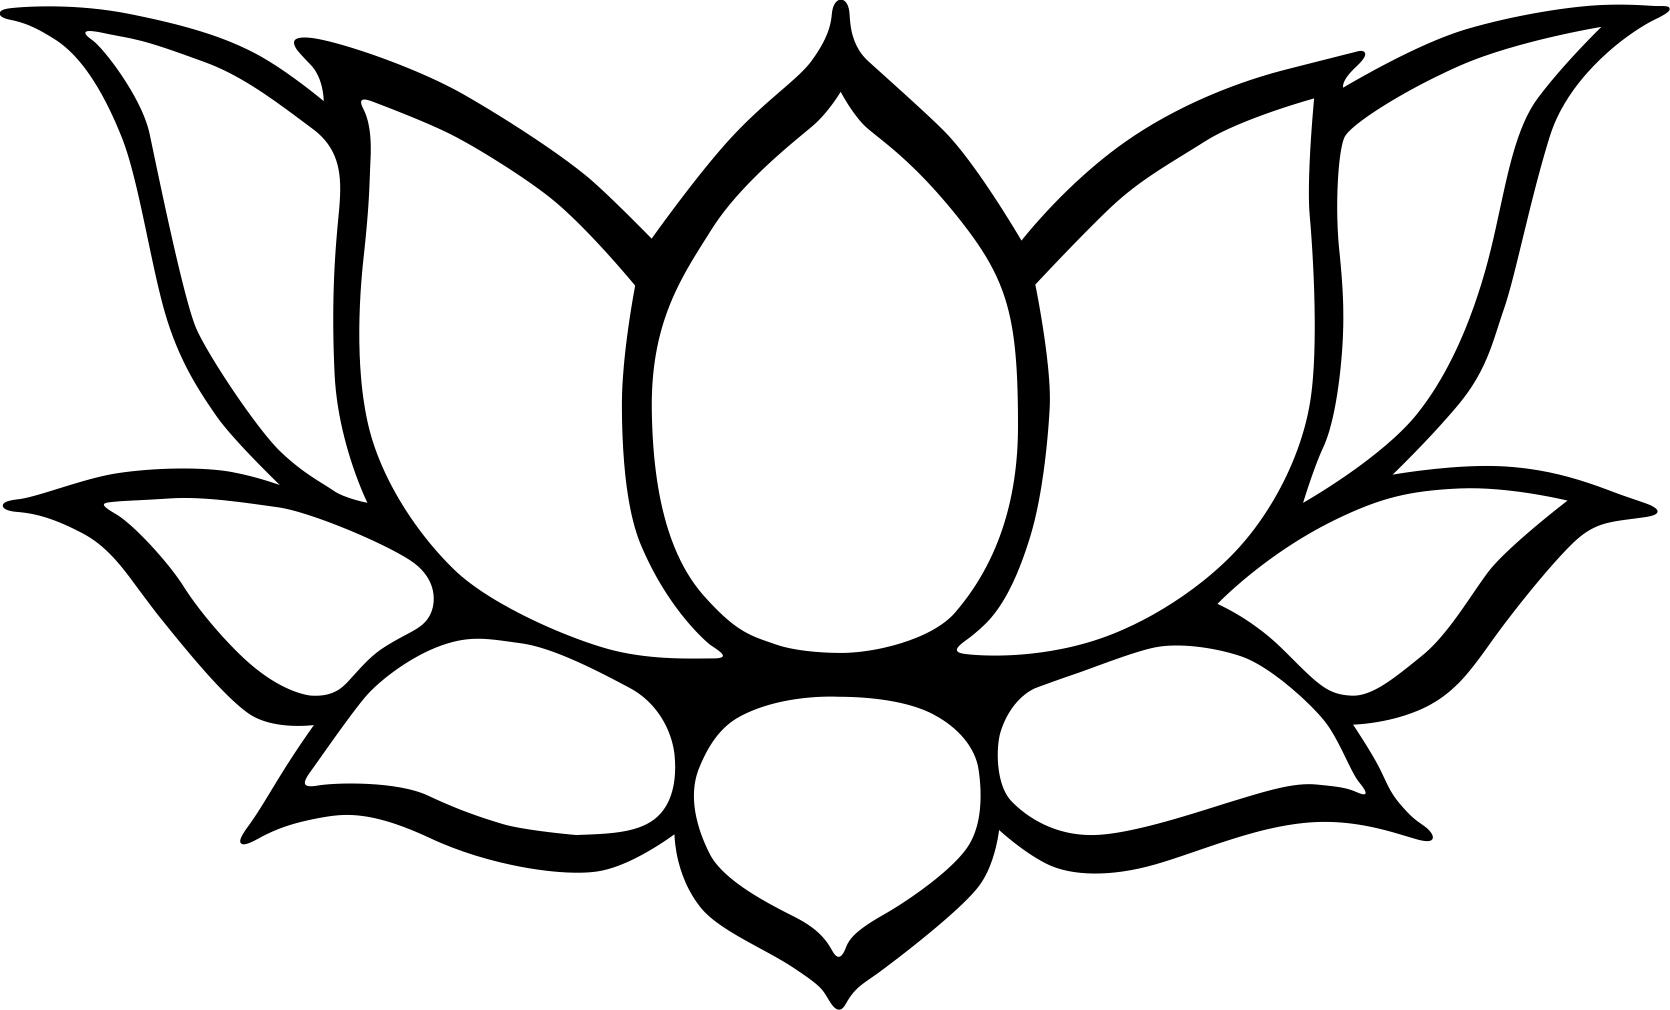 Lotus clipart #5, Download drawings